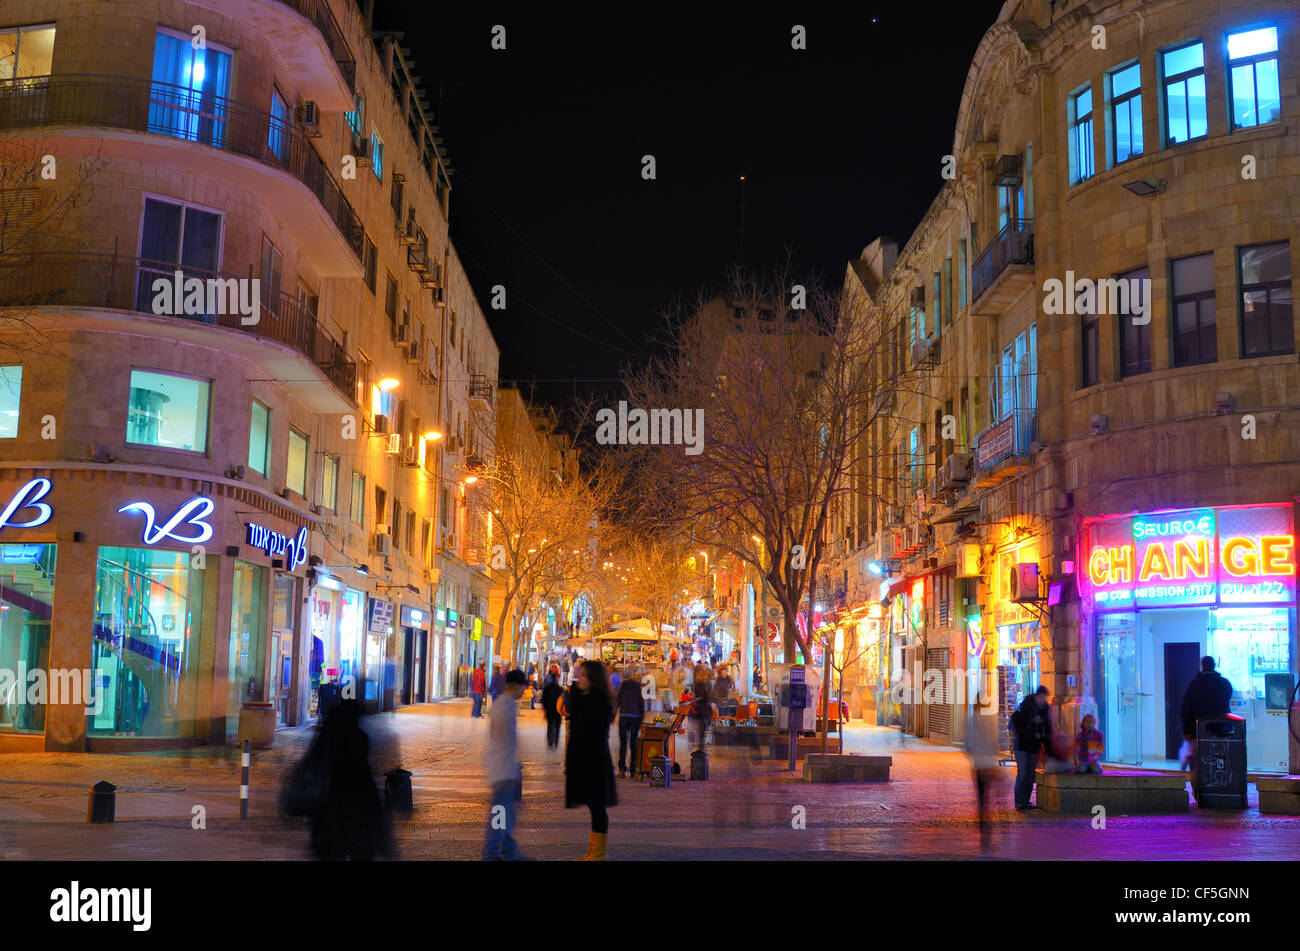 Ben Yehuda Street, the main nightlife and tourism destination in Jerusalem, Israel. - Stock Image